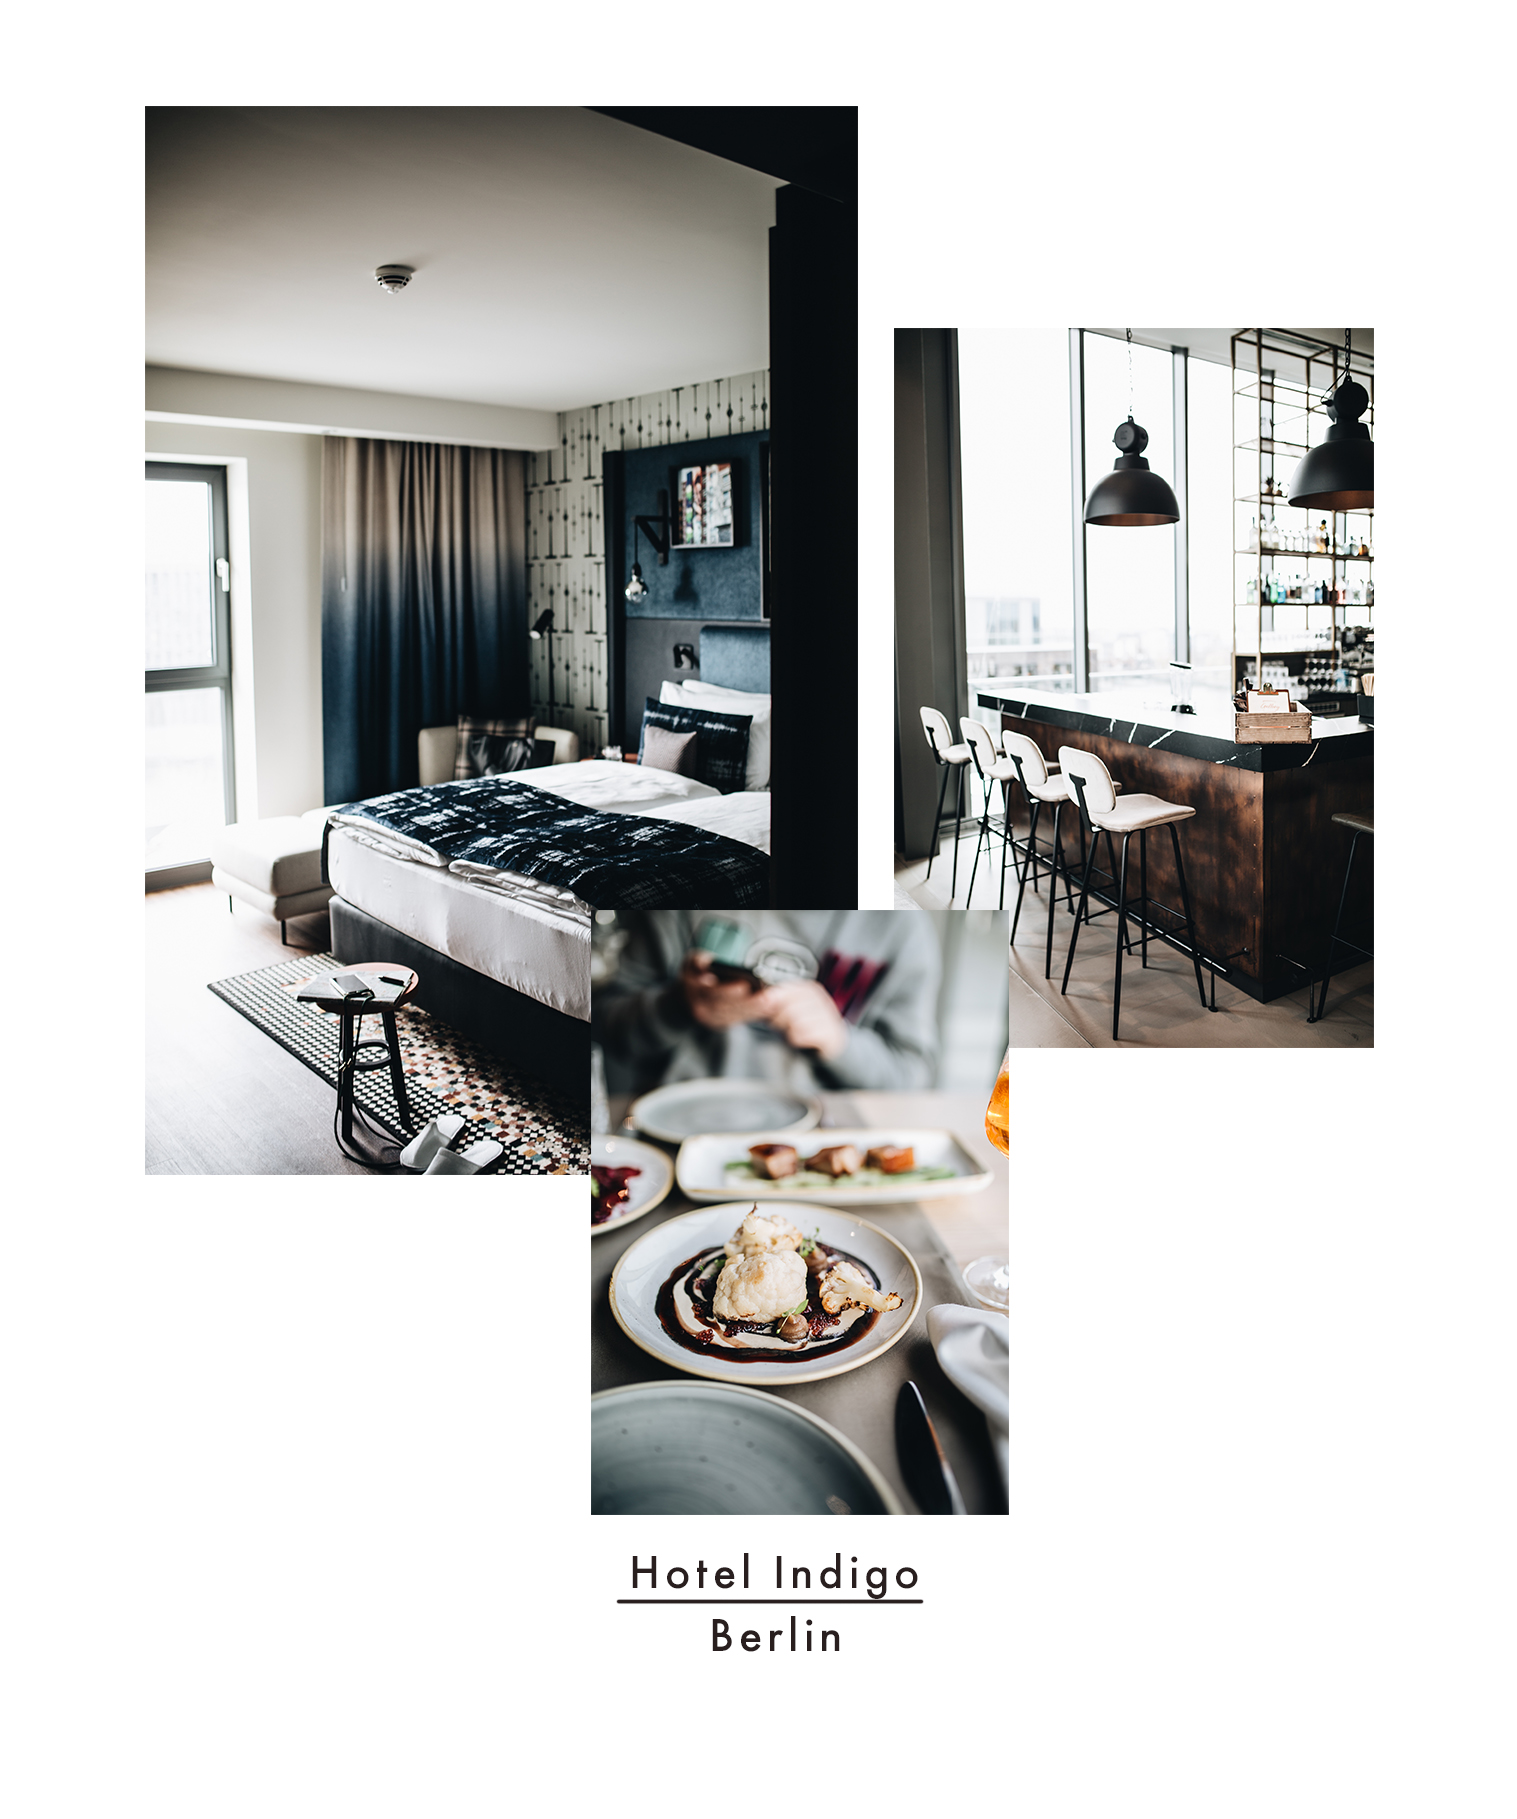 Design Interieur Blog Blog Herz Und Blut Interior Design Lifestyle Travel Blog